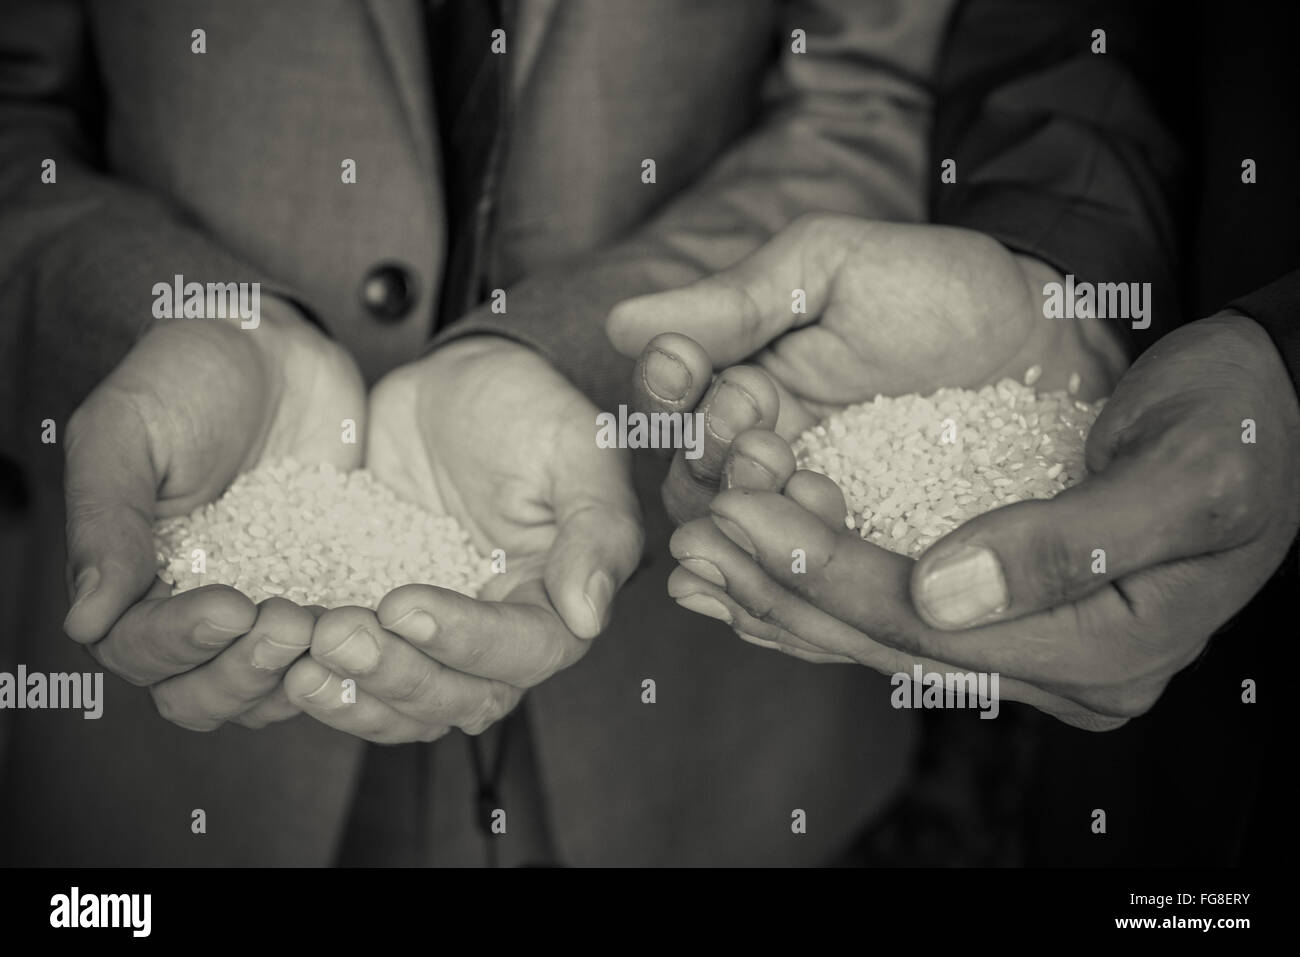 Cropped Hands Holding Rice - Stock Image